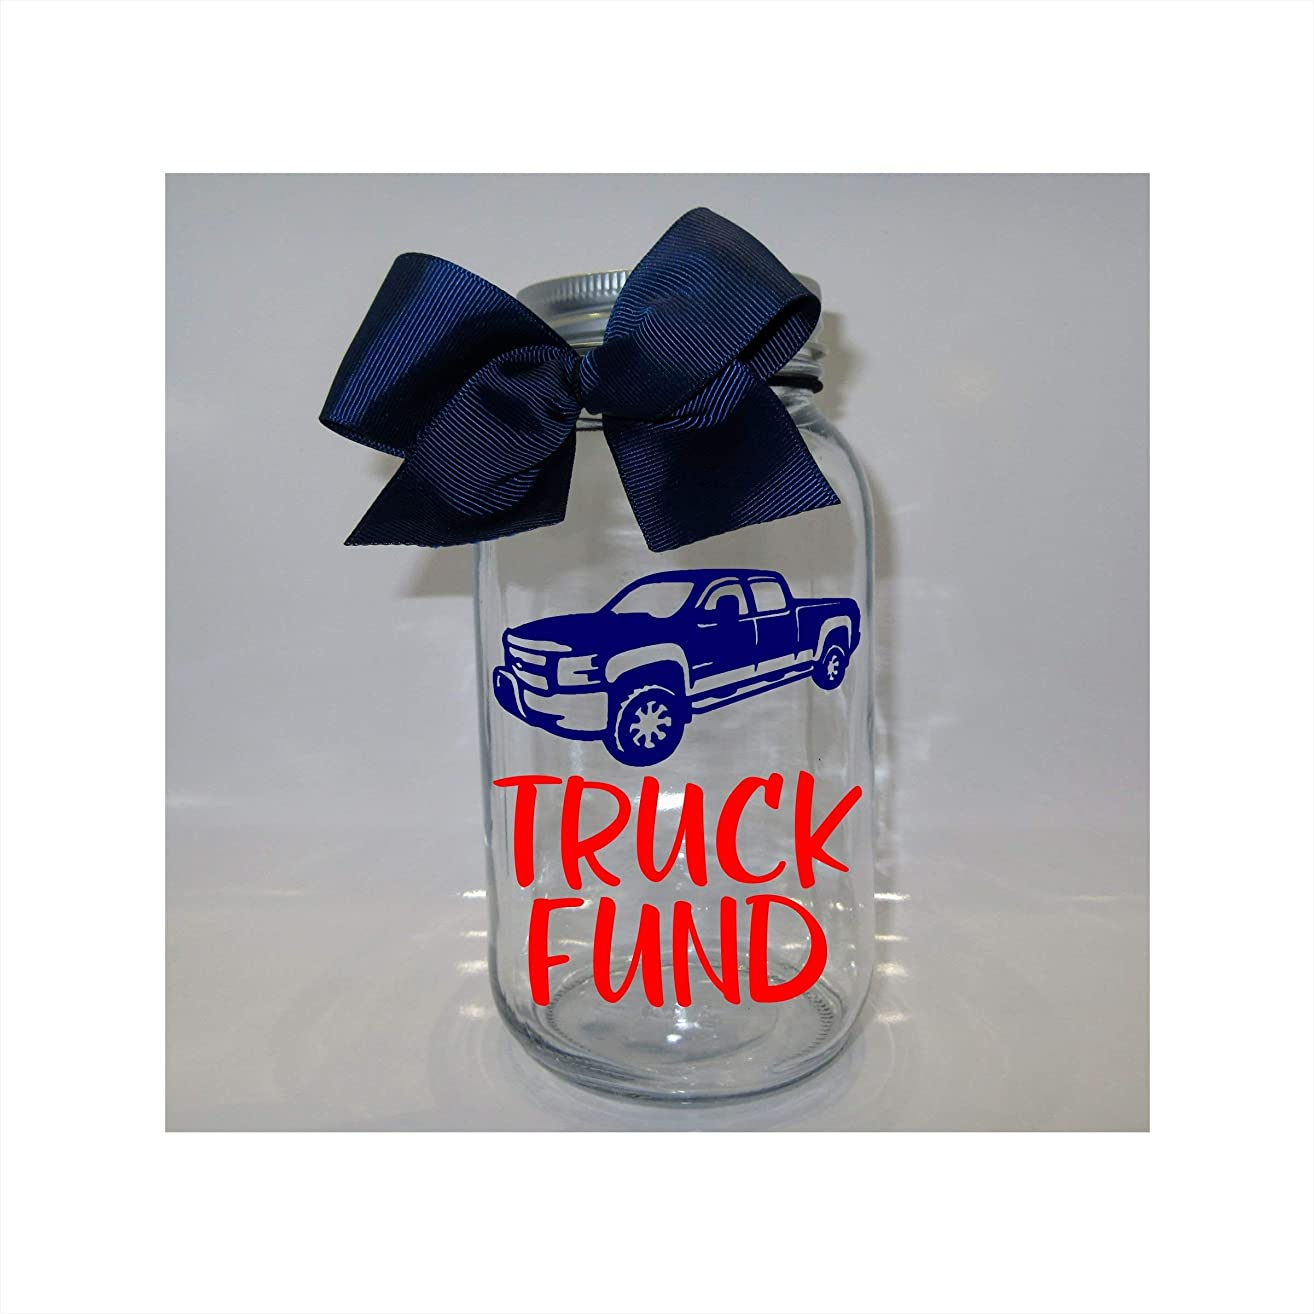 Truck Fund Mason Jar Bank - Coin Slot Lid - Available in 3 Sizes